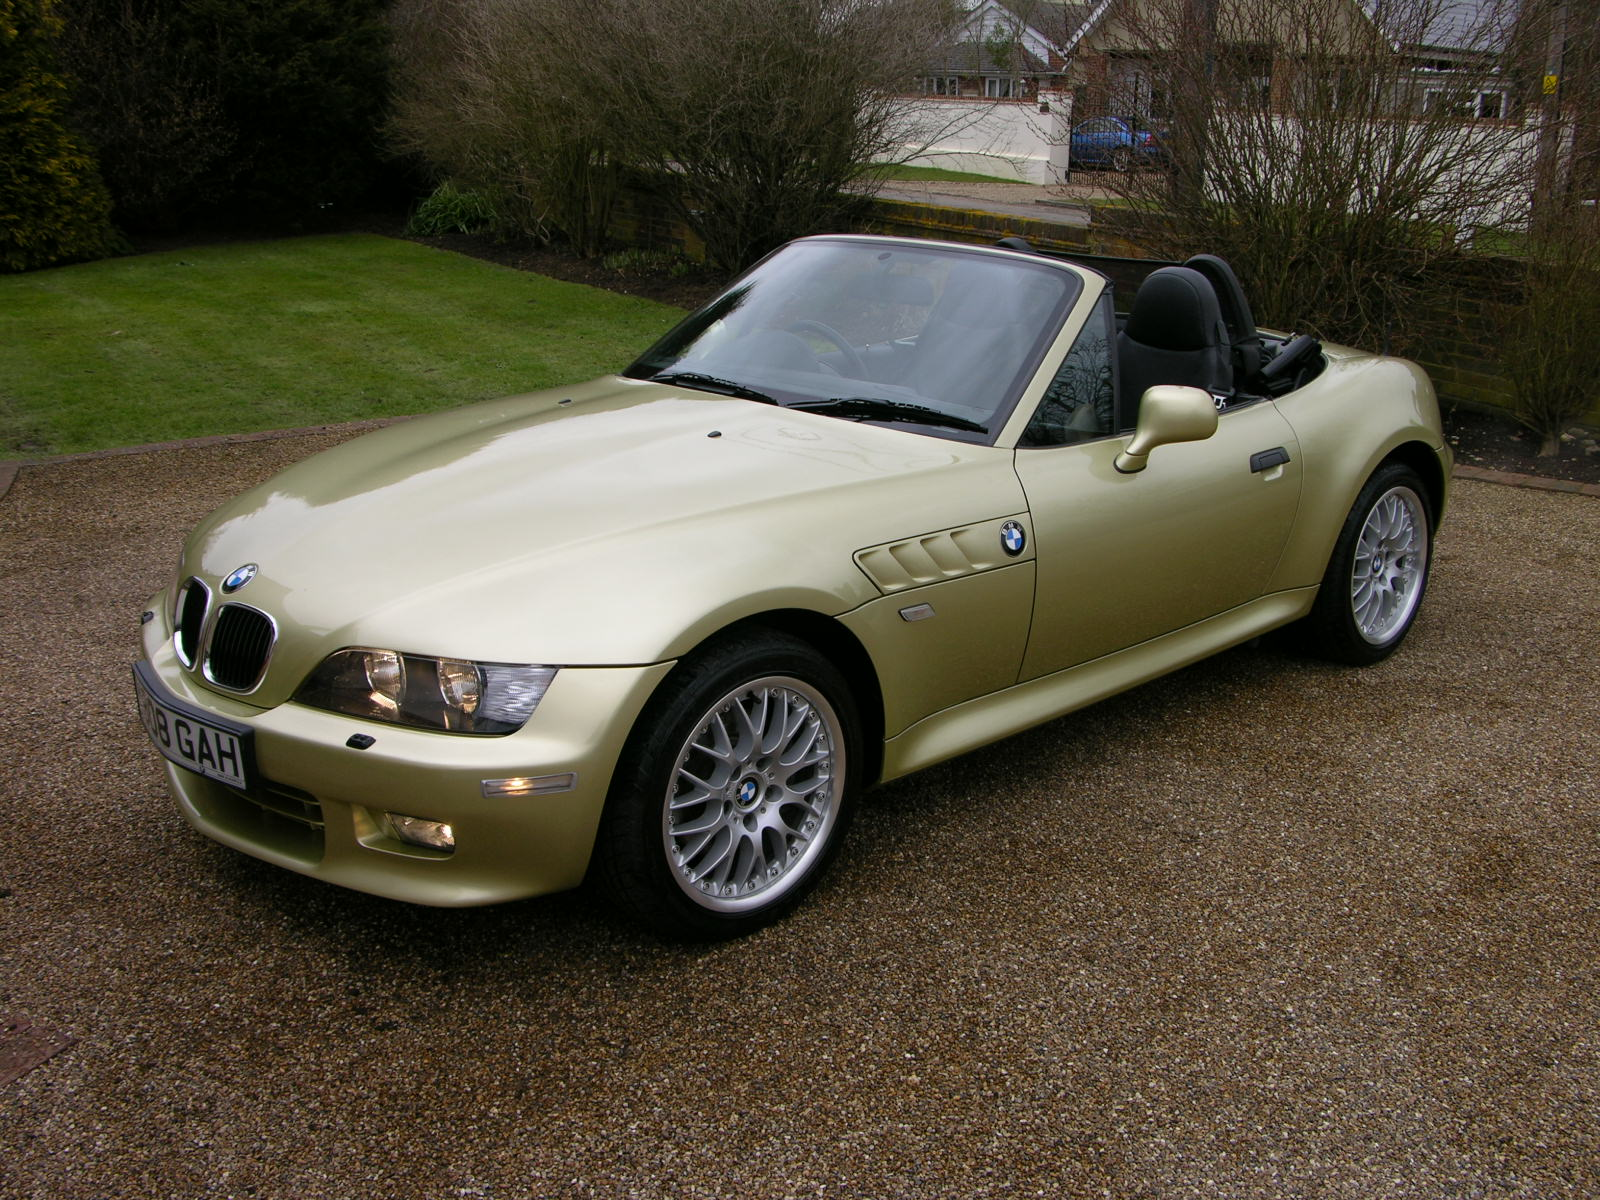 File Bmw Z3 3 0i 2001 Flickr The Car Spy 9 Jpg Wikimedia Commons